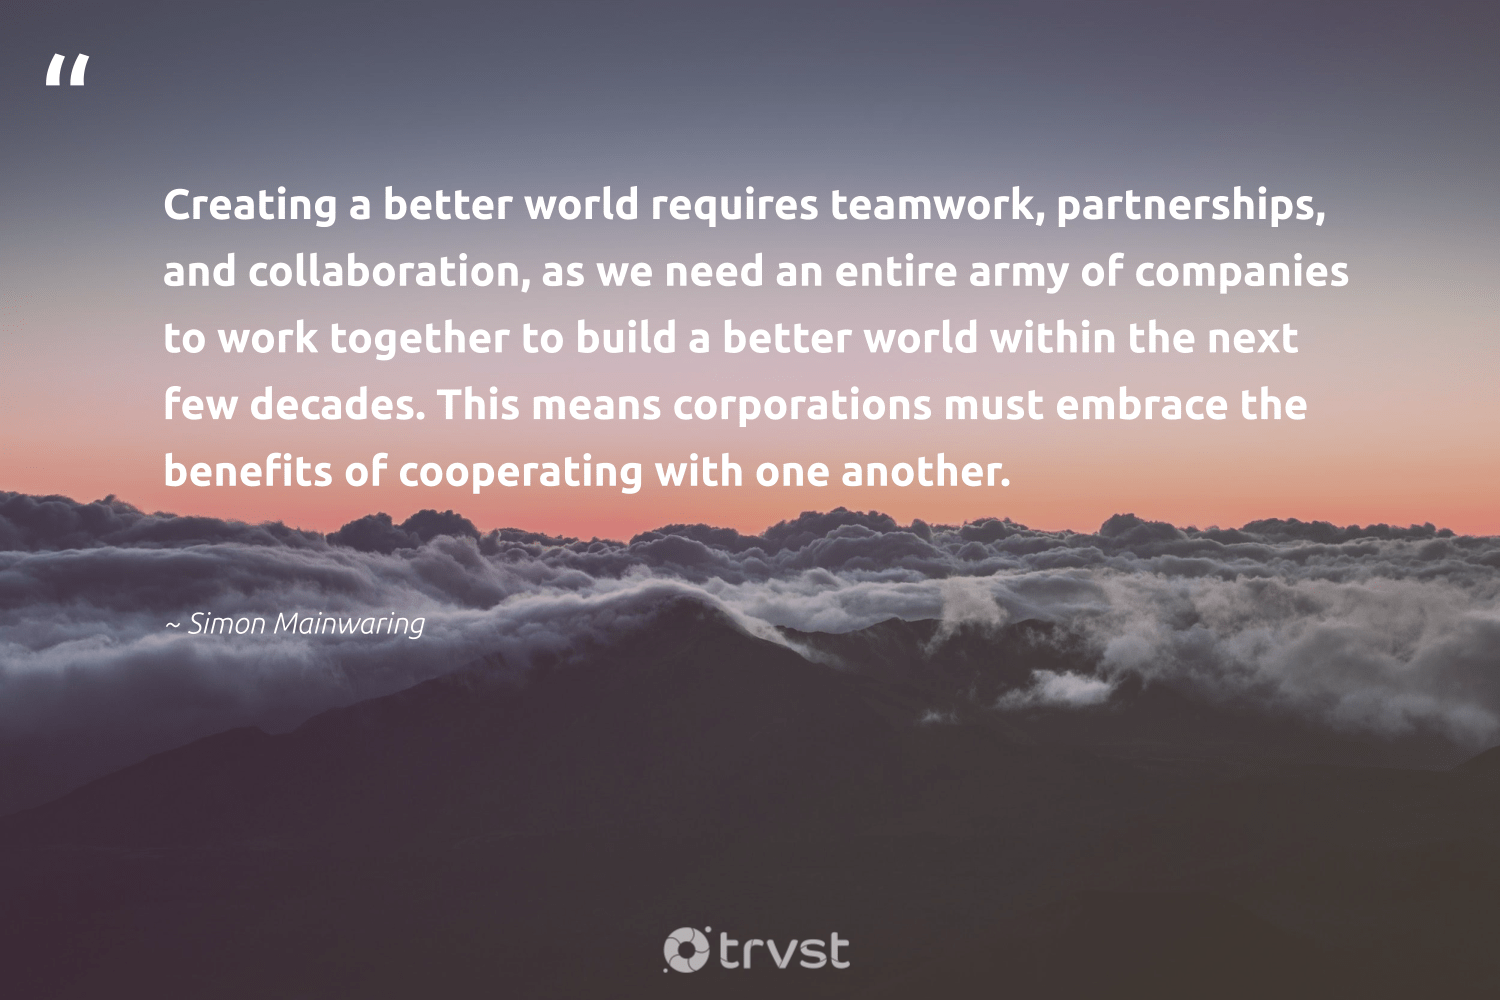 """Creating a better world requires teamwork, partnerships, and collaboration, as we need an entire army of companies to work together to build a better world within the next few decades. This means corporations must embrace the benefits of cooperating with one another.""  - Simon Mainwaring #trvst #quotes #futureofwork #dosomething #begreat #bethechange #softskills #takeaction #nevergiveup #dotherightthing #beinspired #collectiveaction"